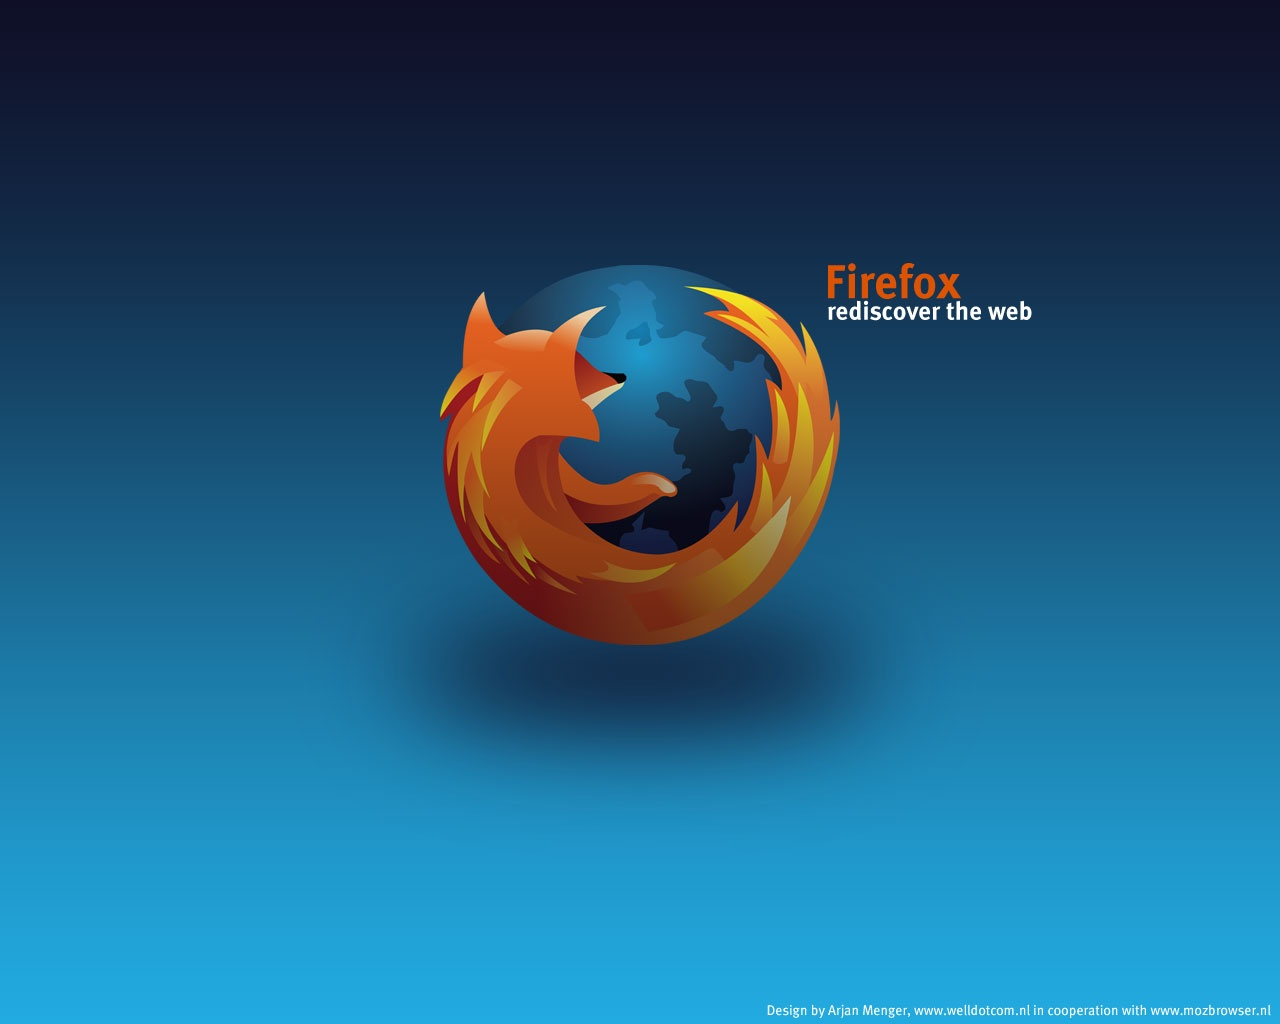 1280x1024 blue mozilla firefox desktop pc and mac wallpaper